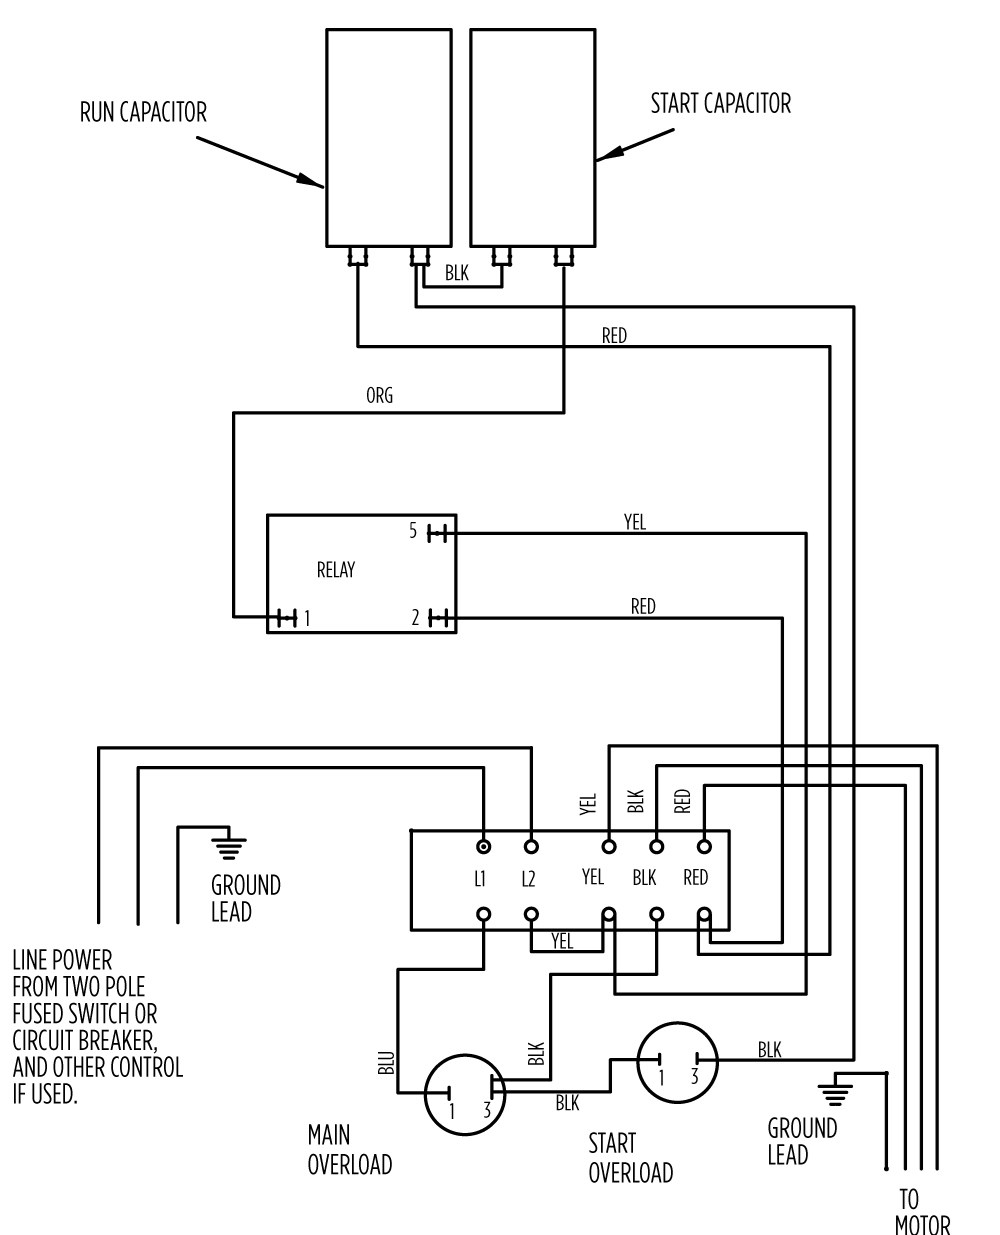 Gas Pump Wiring Diagram Data Effluent Aim Manual Page 55 Single Phase Motors And Controls Motor Wire